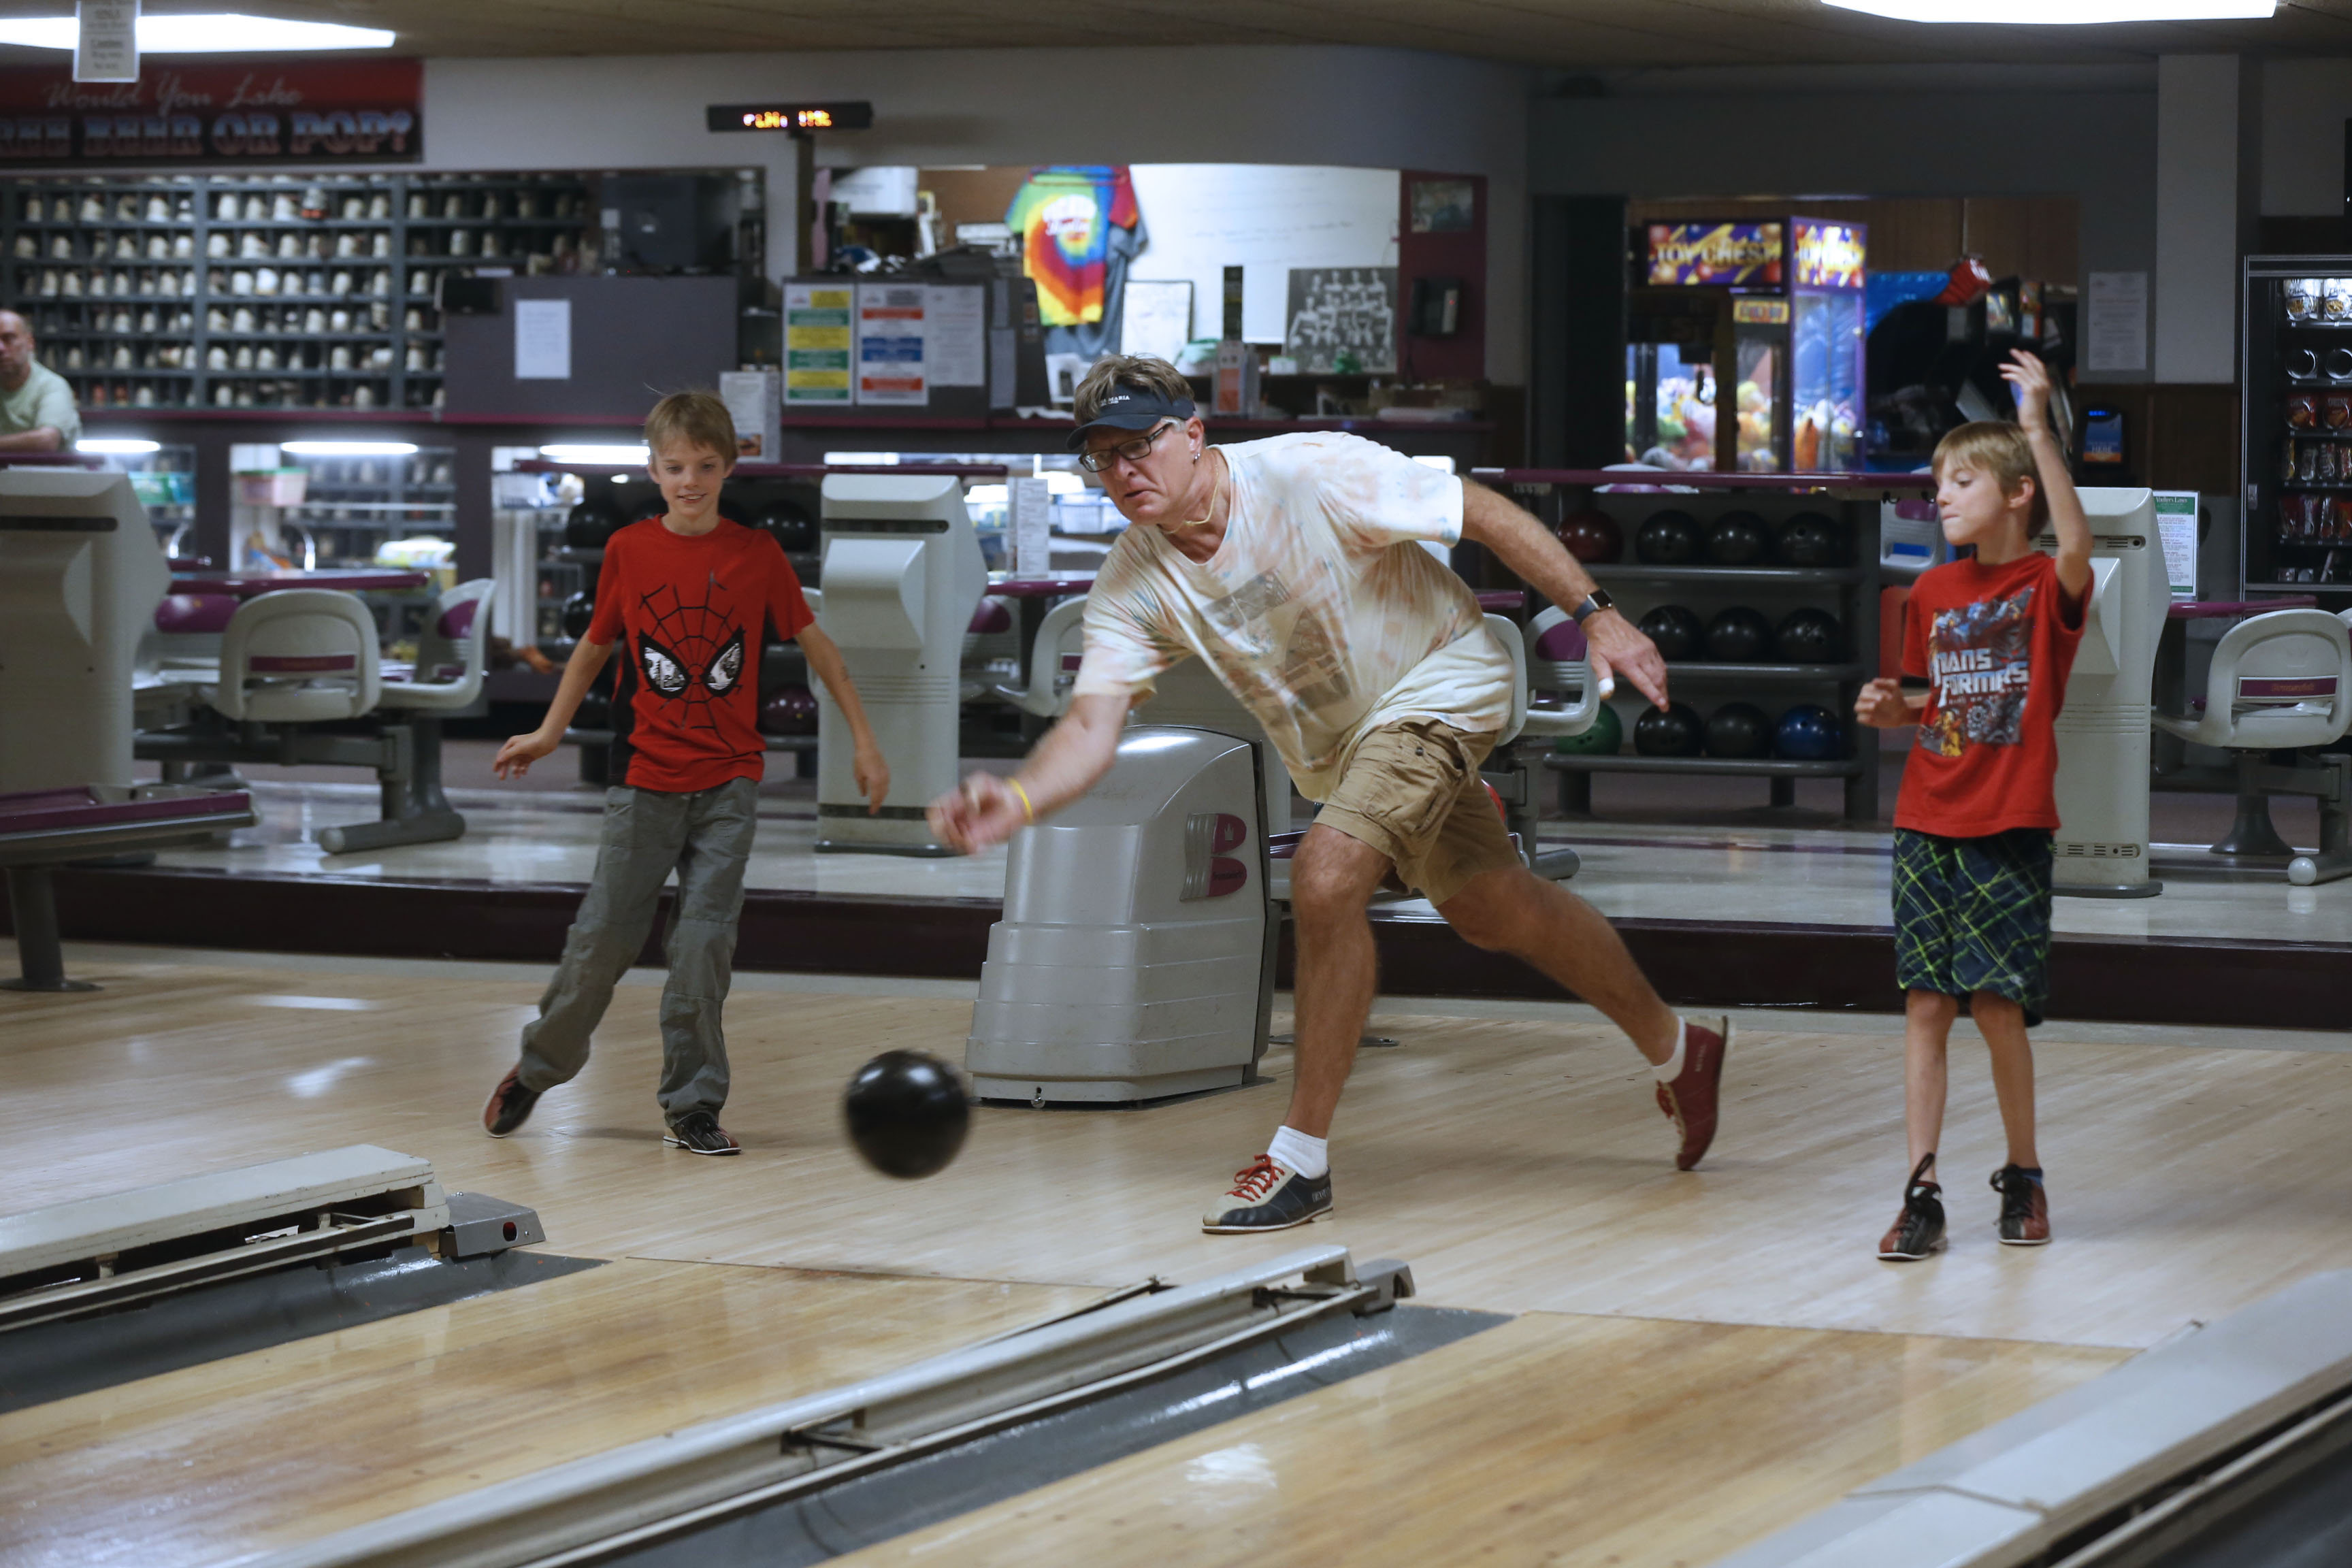 Paul Biddle of Eggertsville and his twin 9-year-old sons, Beau, on left, and Bruno, bowl at Voelker's Lanes in Buffalo on Aug. 8. They ended up being the only customers there that night, which is not unheard of during the summer.  (Robert Kirkham/Buffalo News)